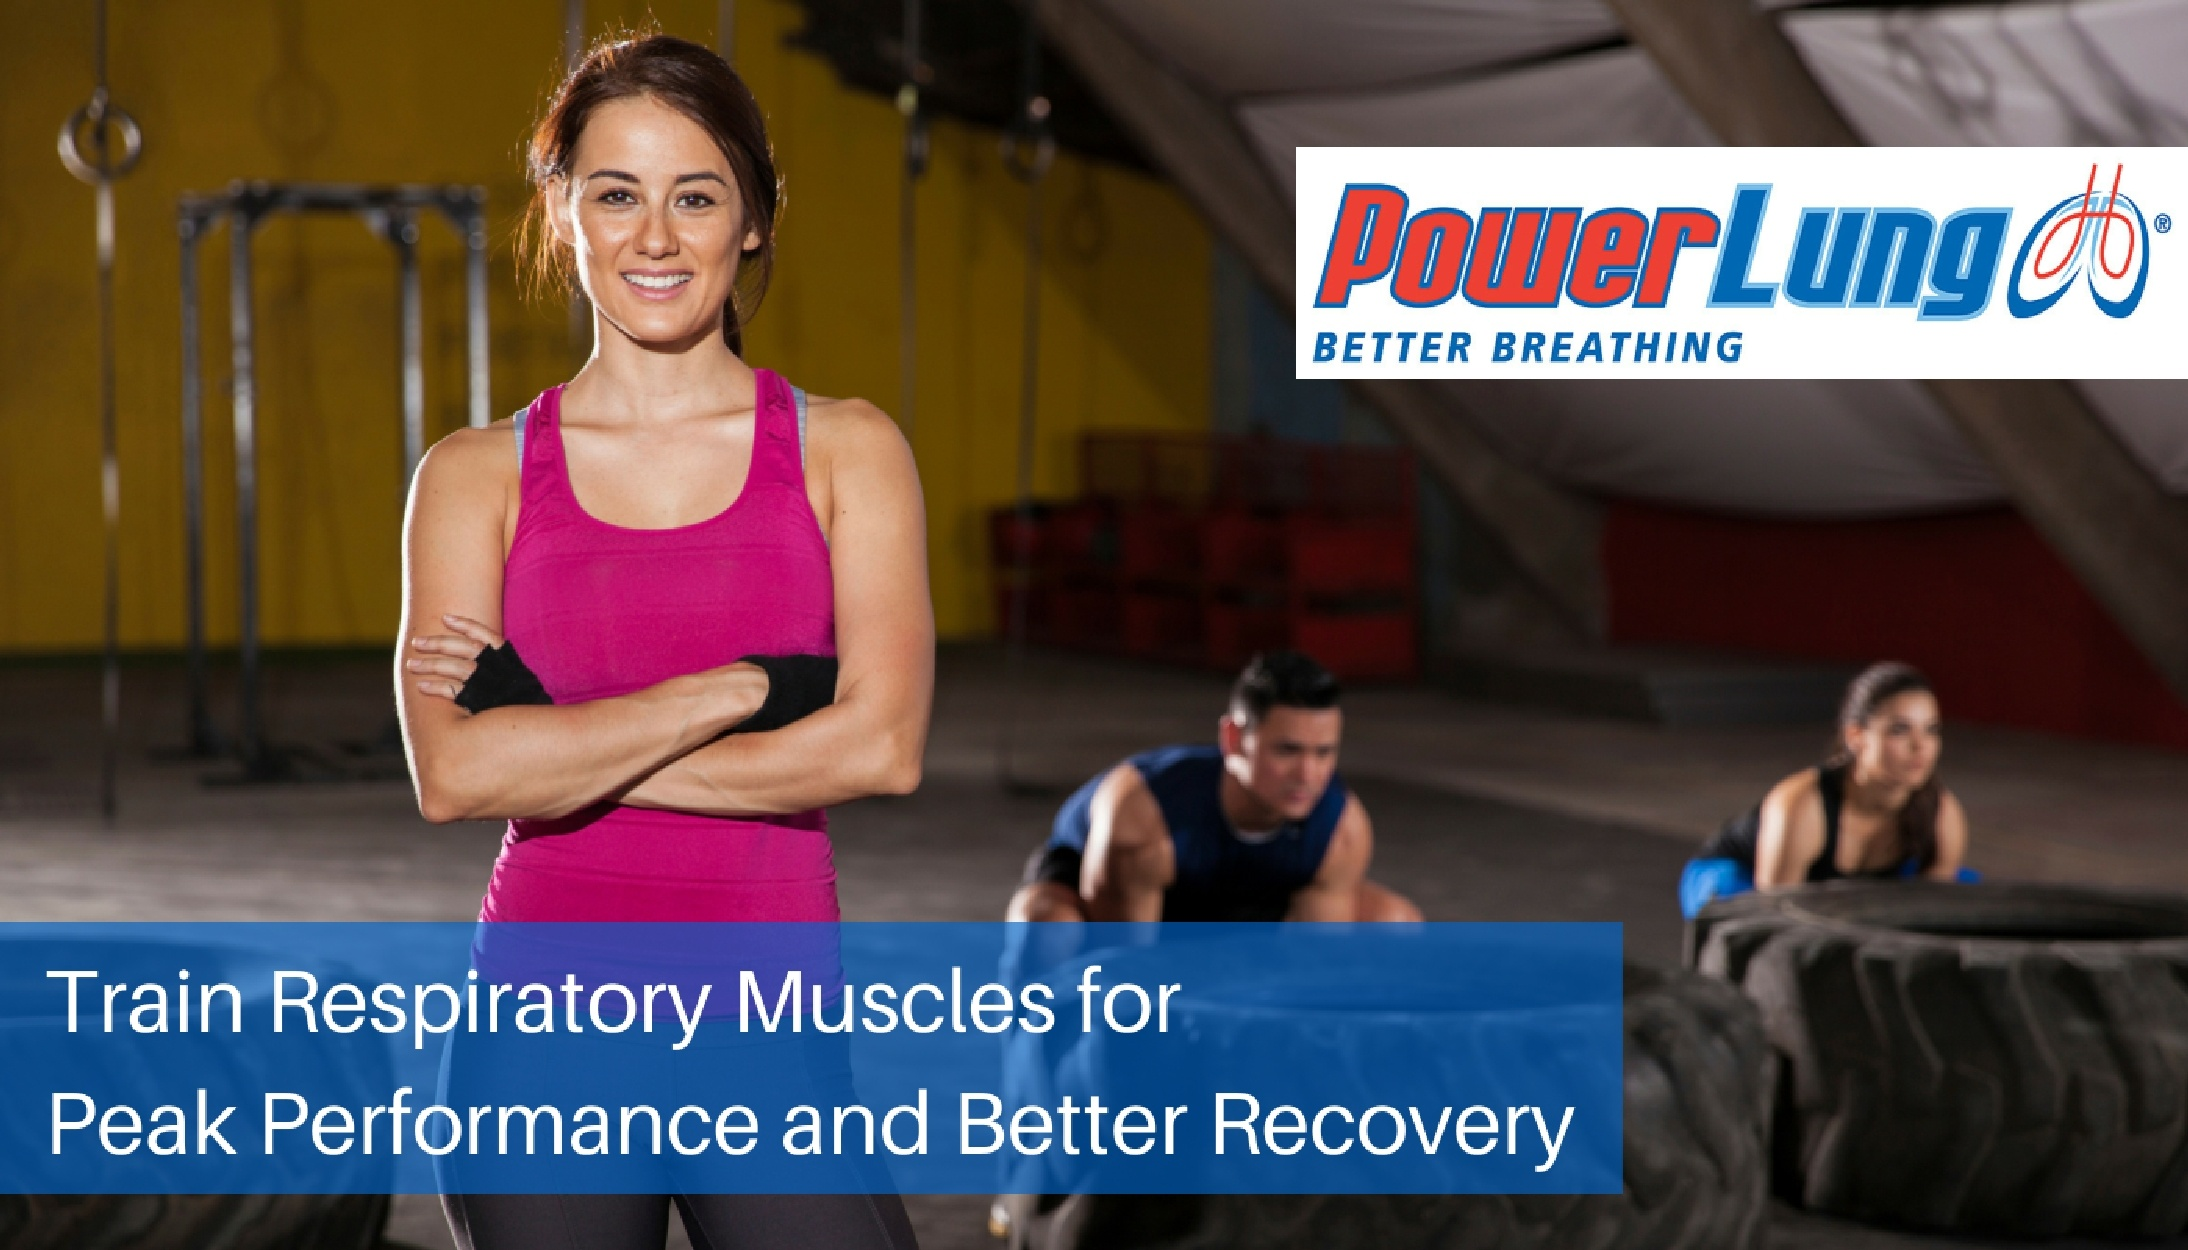 PowerLung - Train Respiratory Muscles for Peak Performance and Better Recovery.jpg